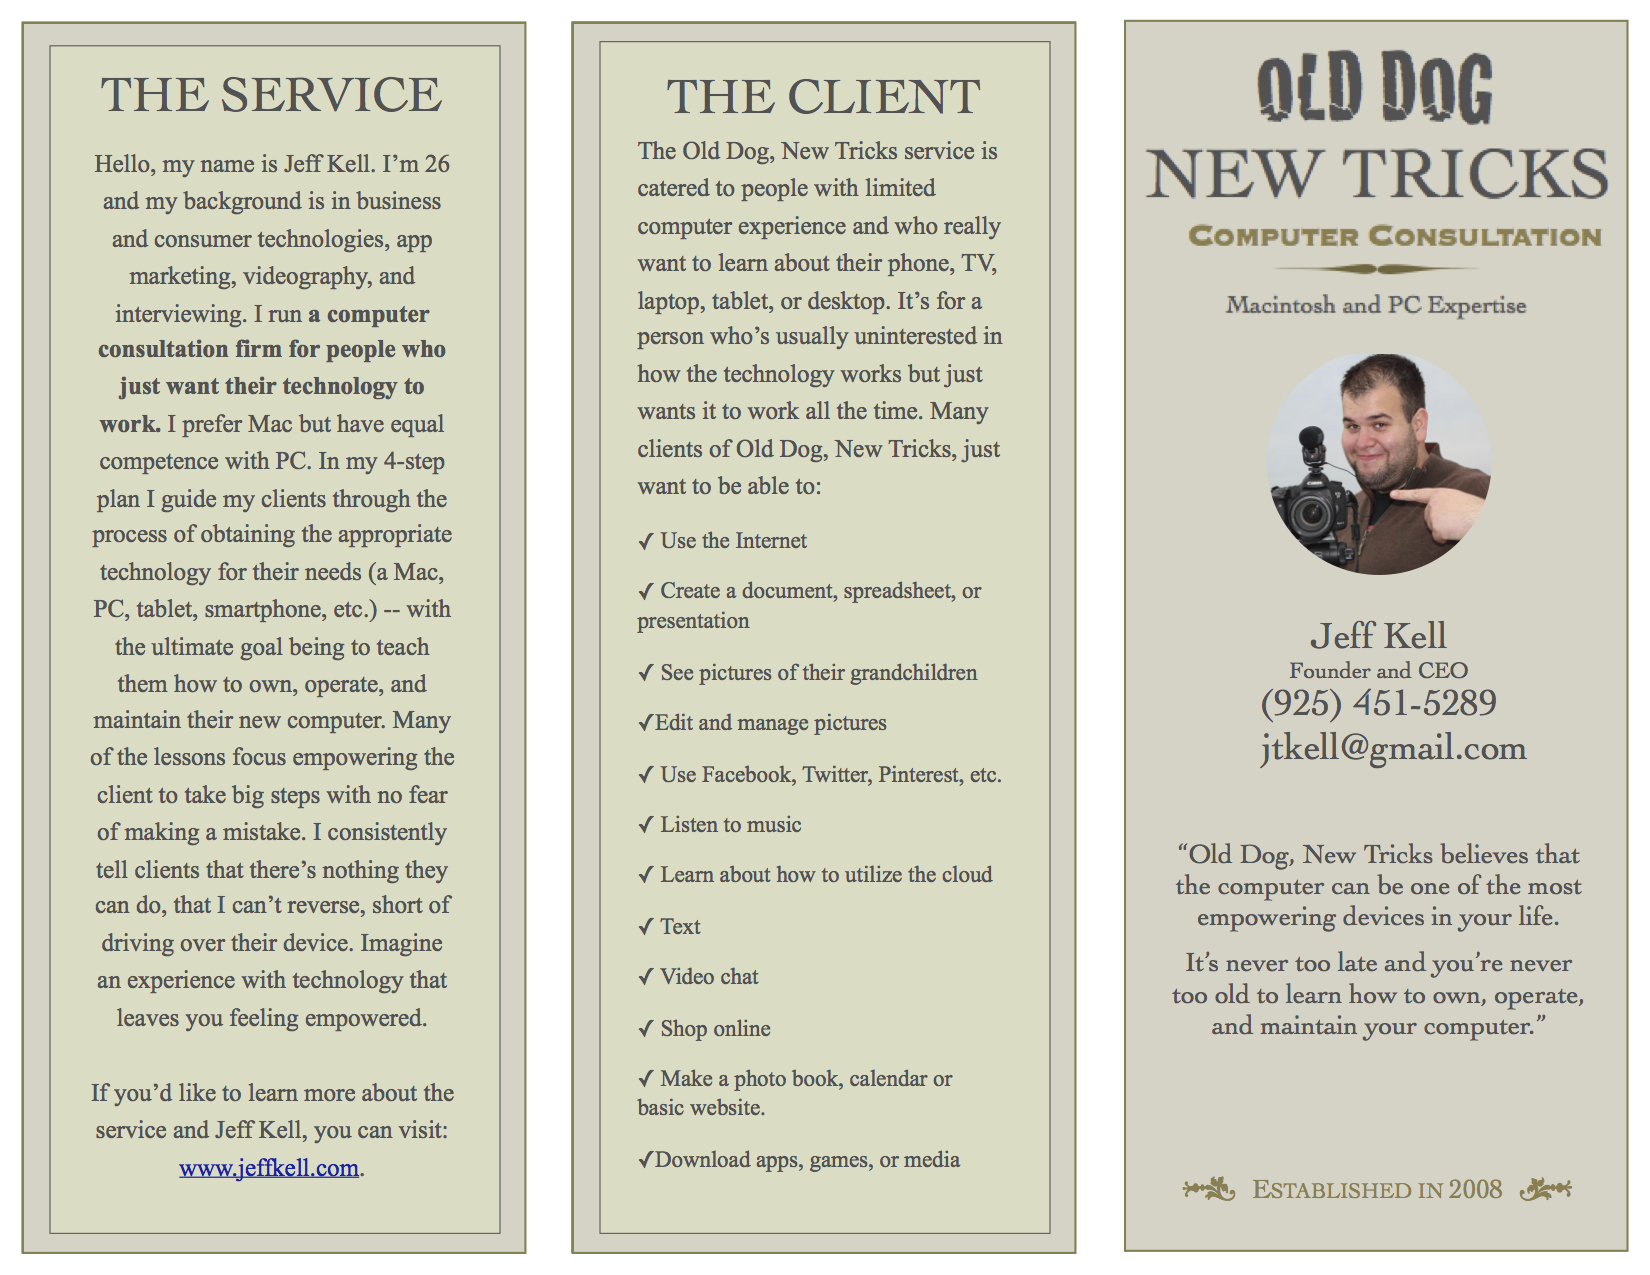 Above is the front of the latest edition of the Old Dog, New Tricks brochure.